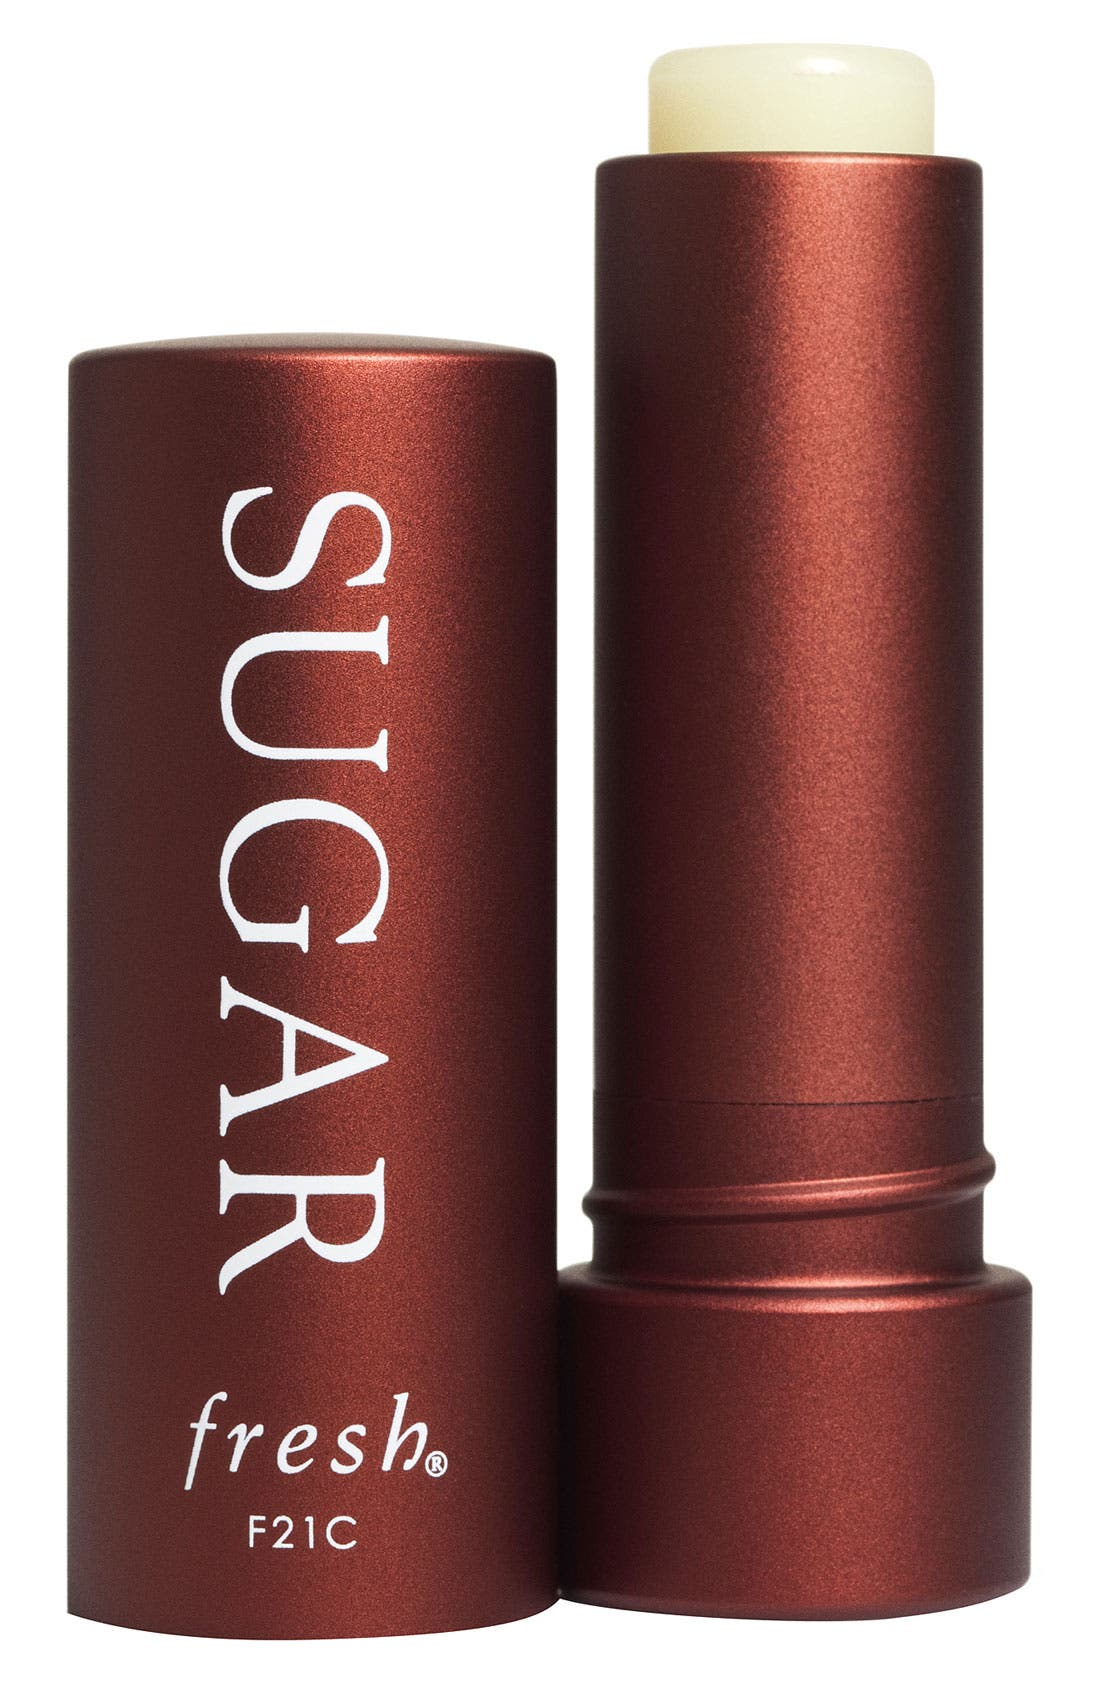 Sugar Lip Treatment SPF 15,                             Main thumbnail 1, color,                             NO COLOR